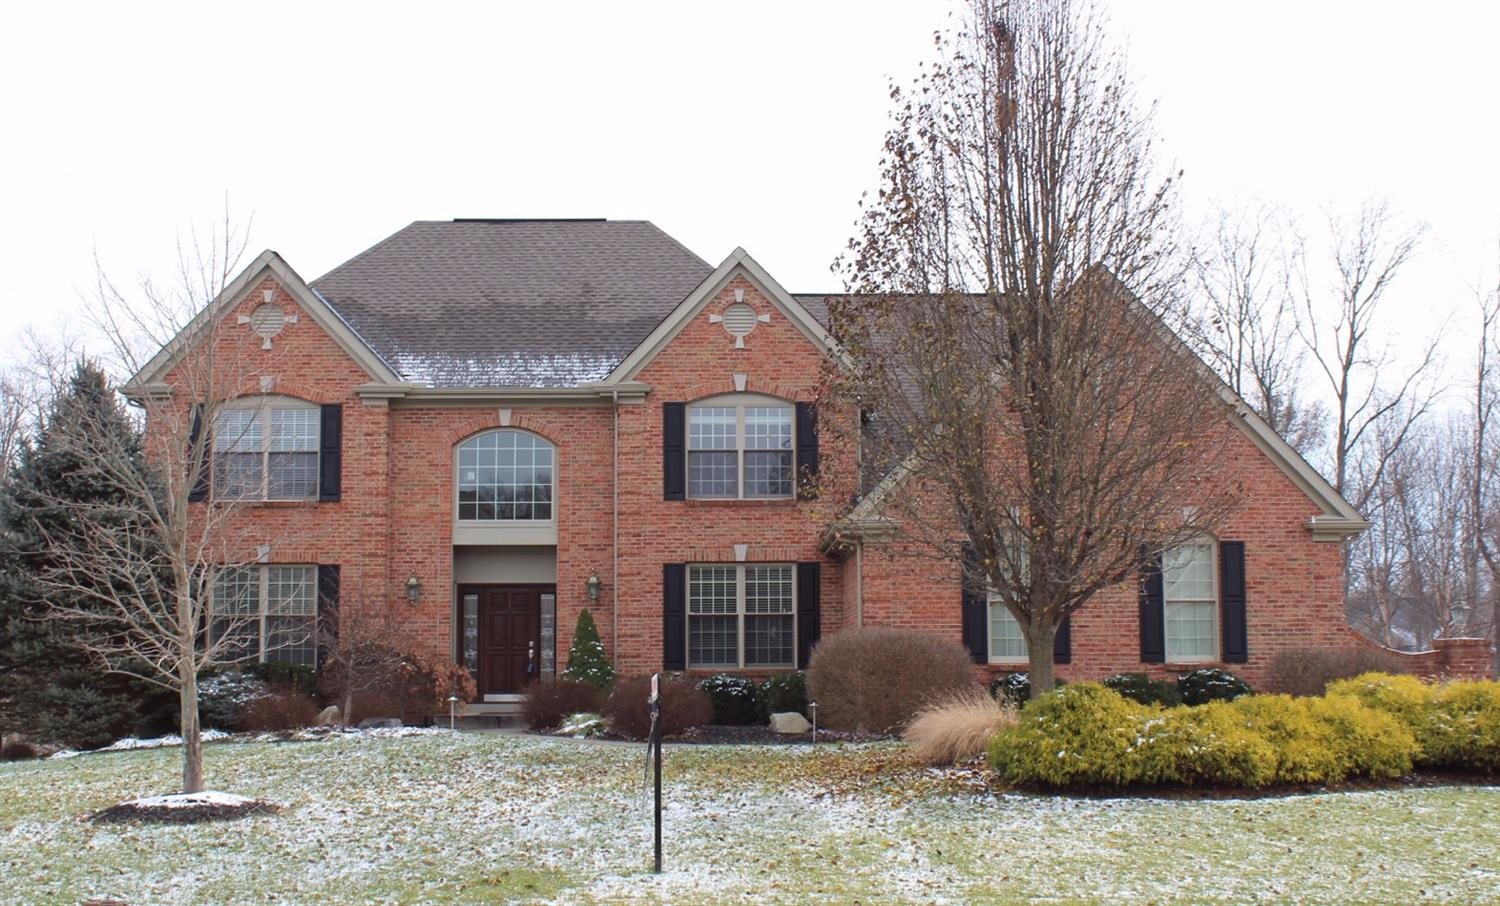 6712 Sandy Shores Dr Miami Twp. (East), OH